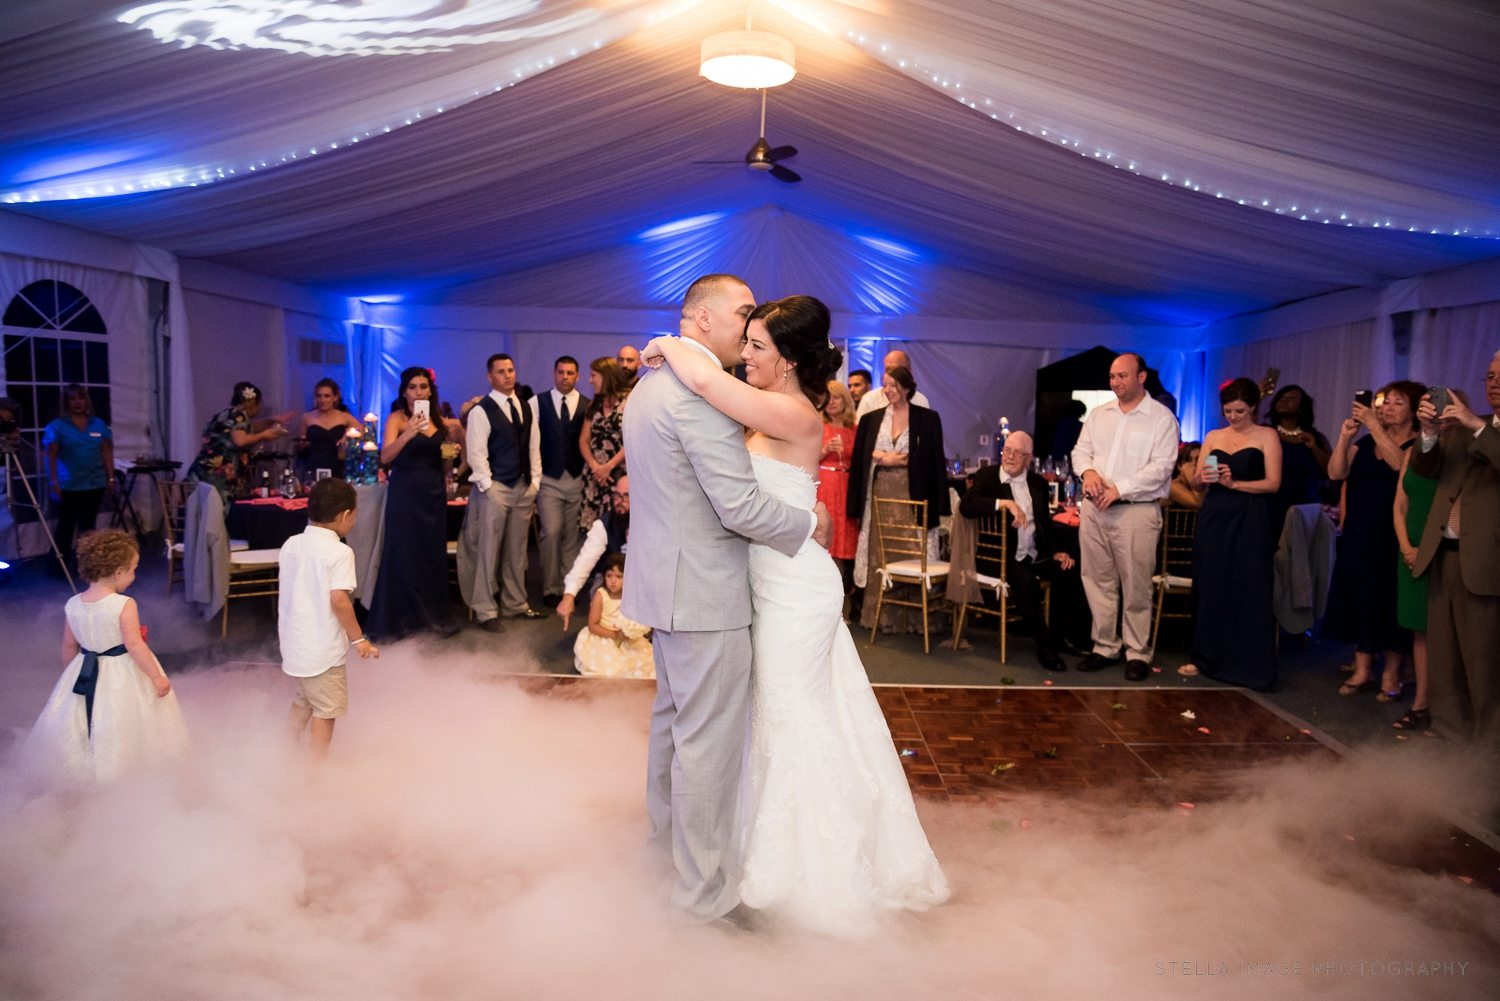 Guests Celebrate During The Wedding Reception At Doubletree Hollywood Beach